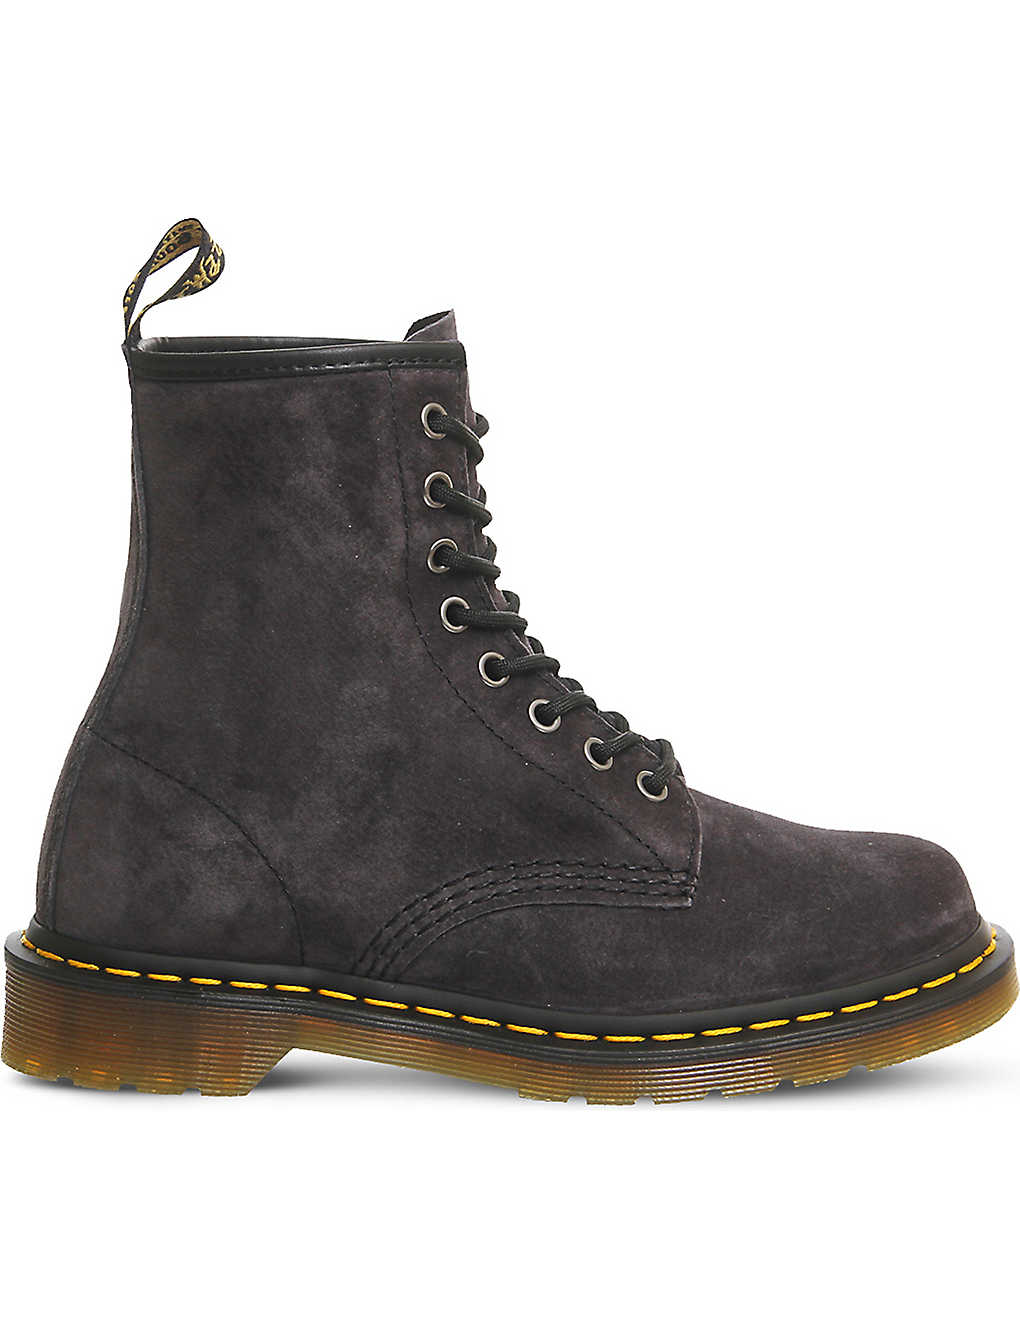 e59e2605dfd7 8-eyelet suede boots - Graphite grey suede ...